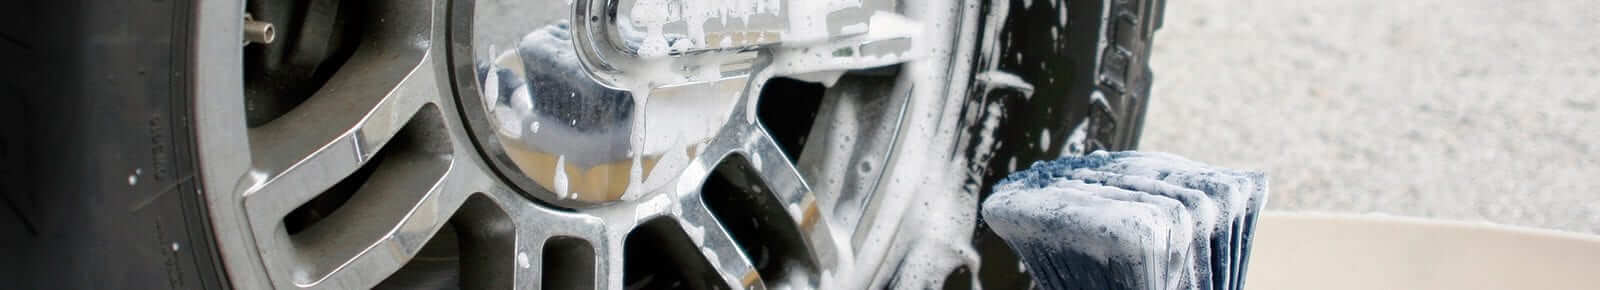 Degrease and Scrub Tires New Orleans - NOLA Automotive Repairs